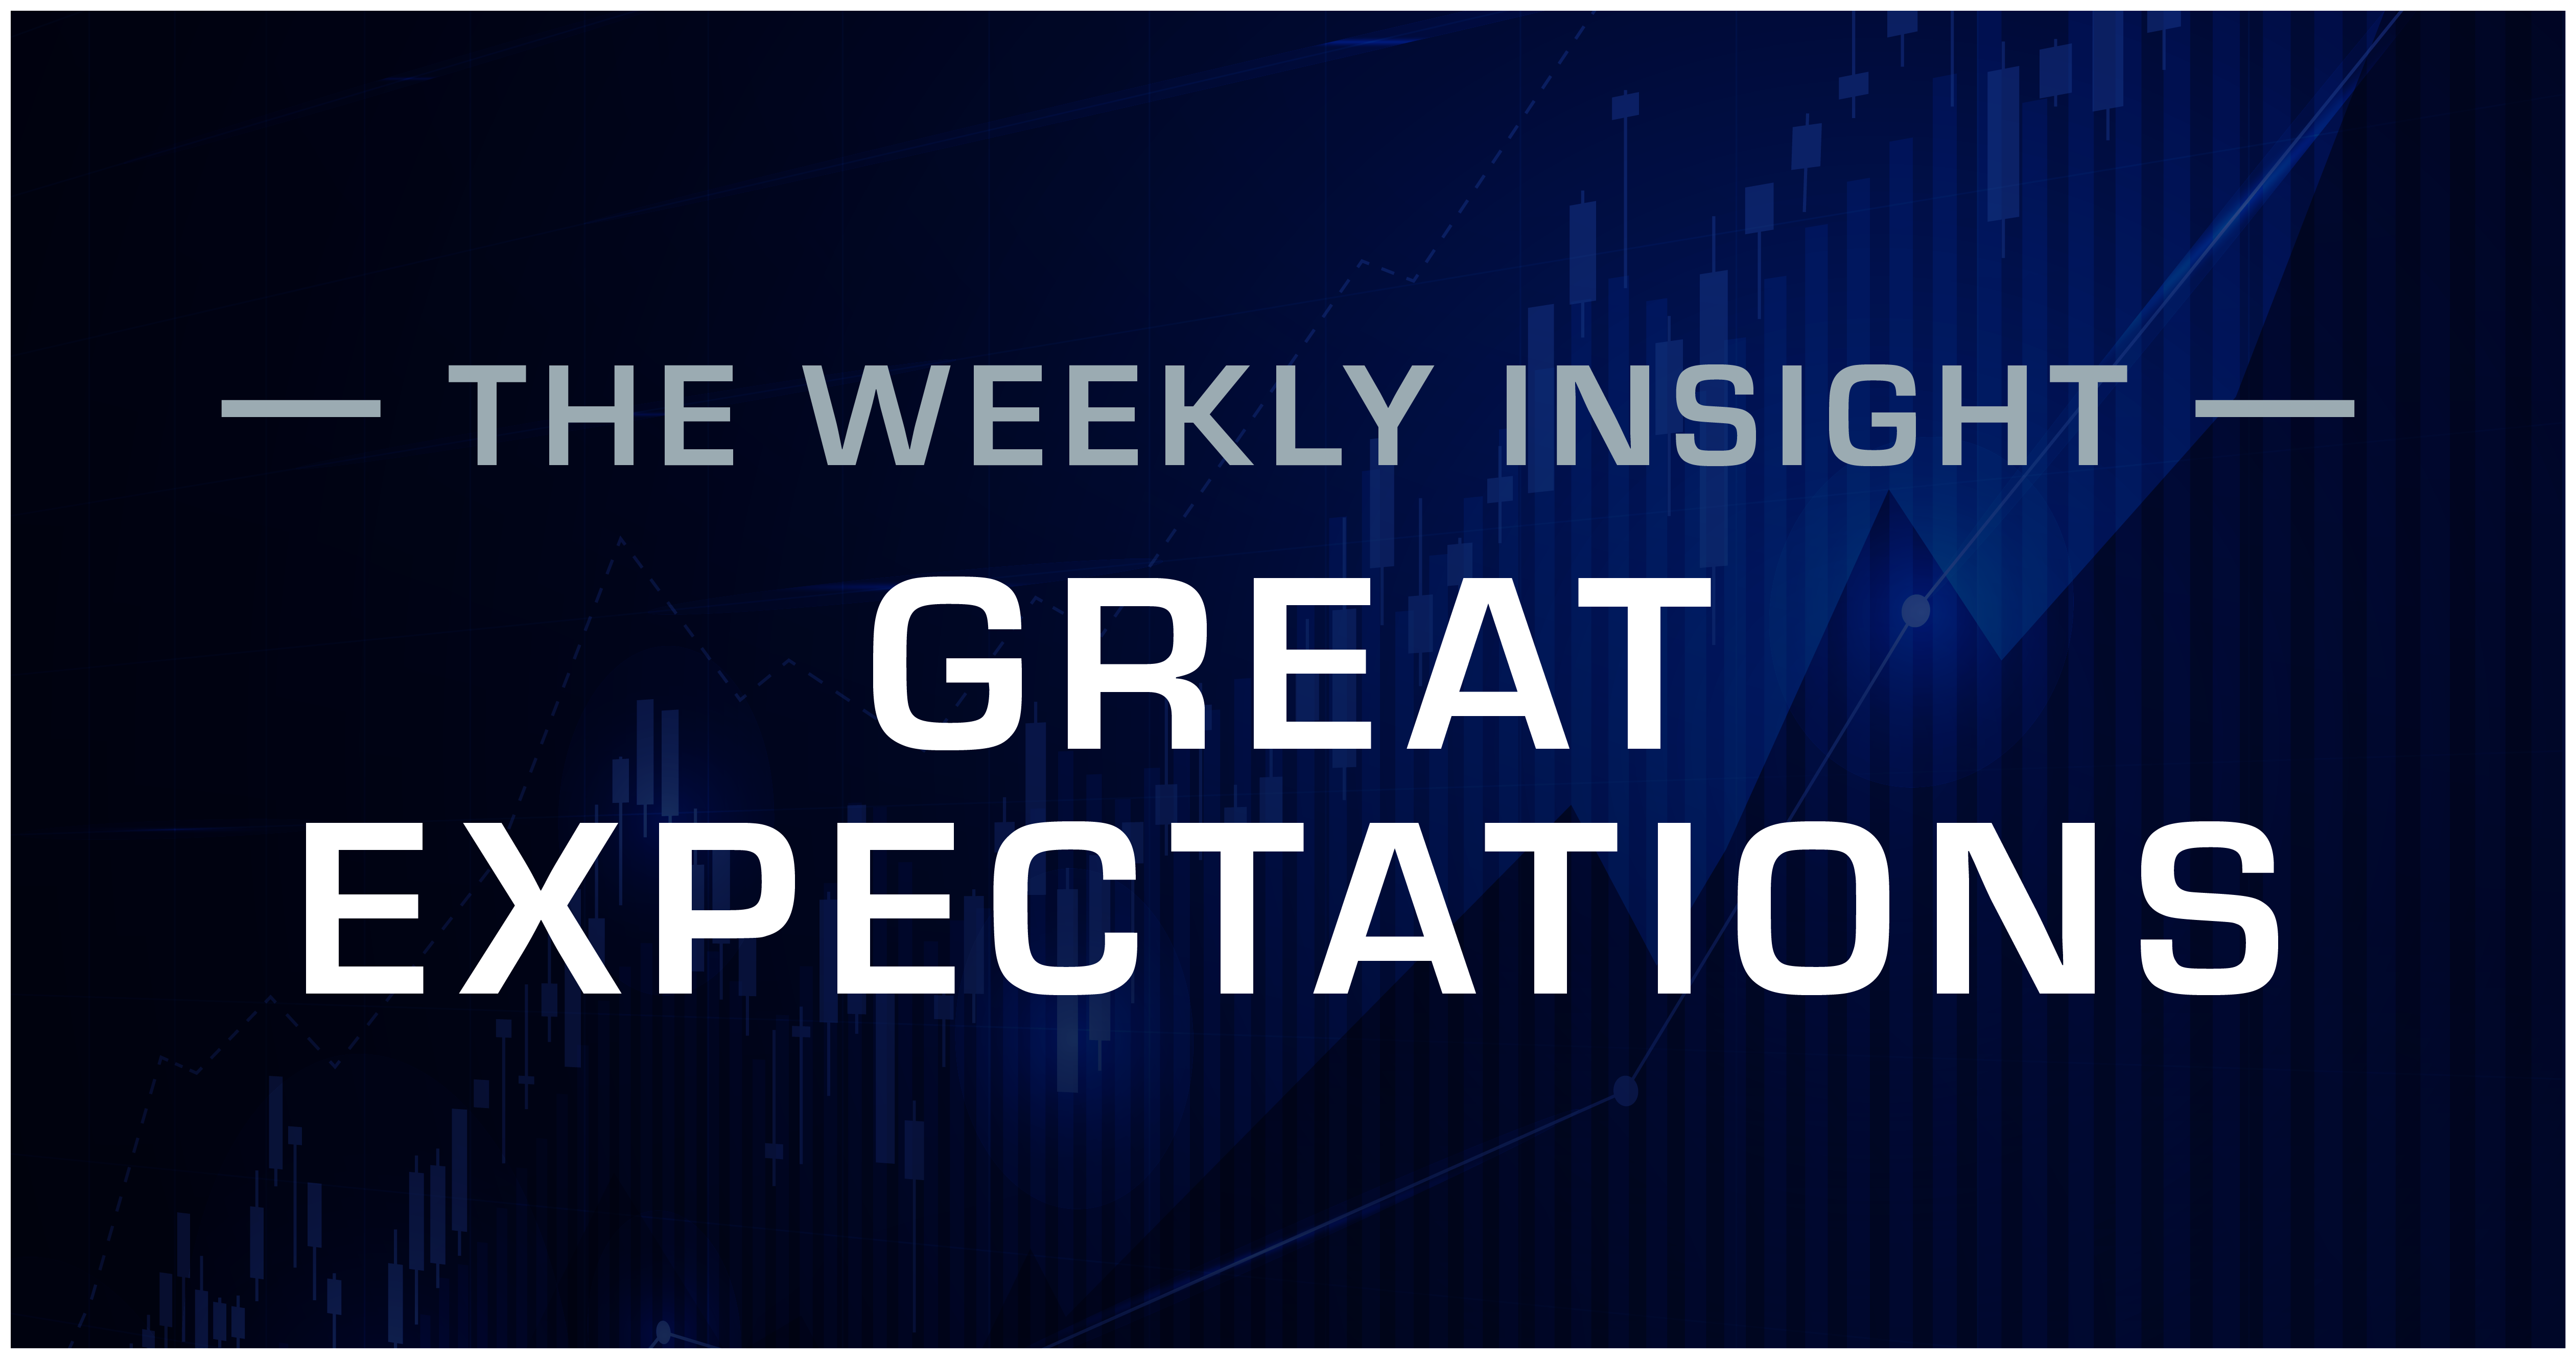 The Weekly Insight: Great Expectations